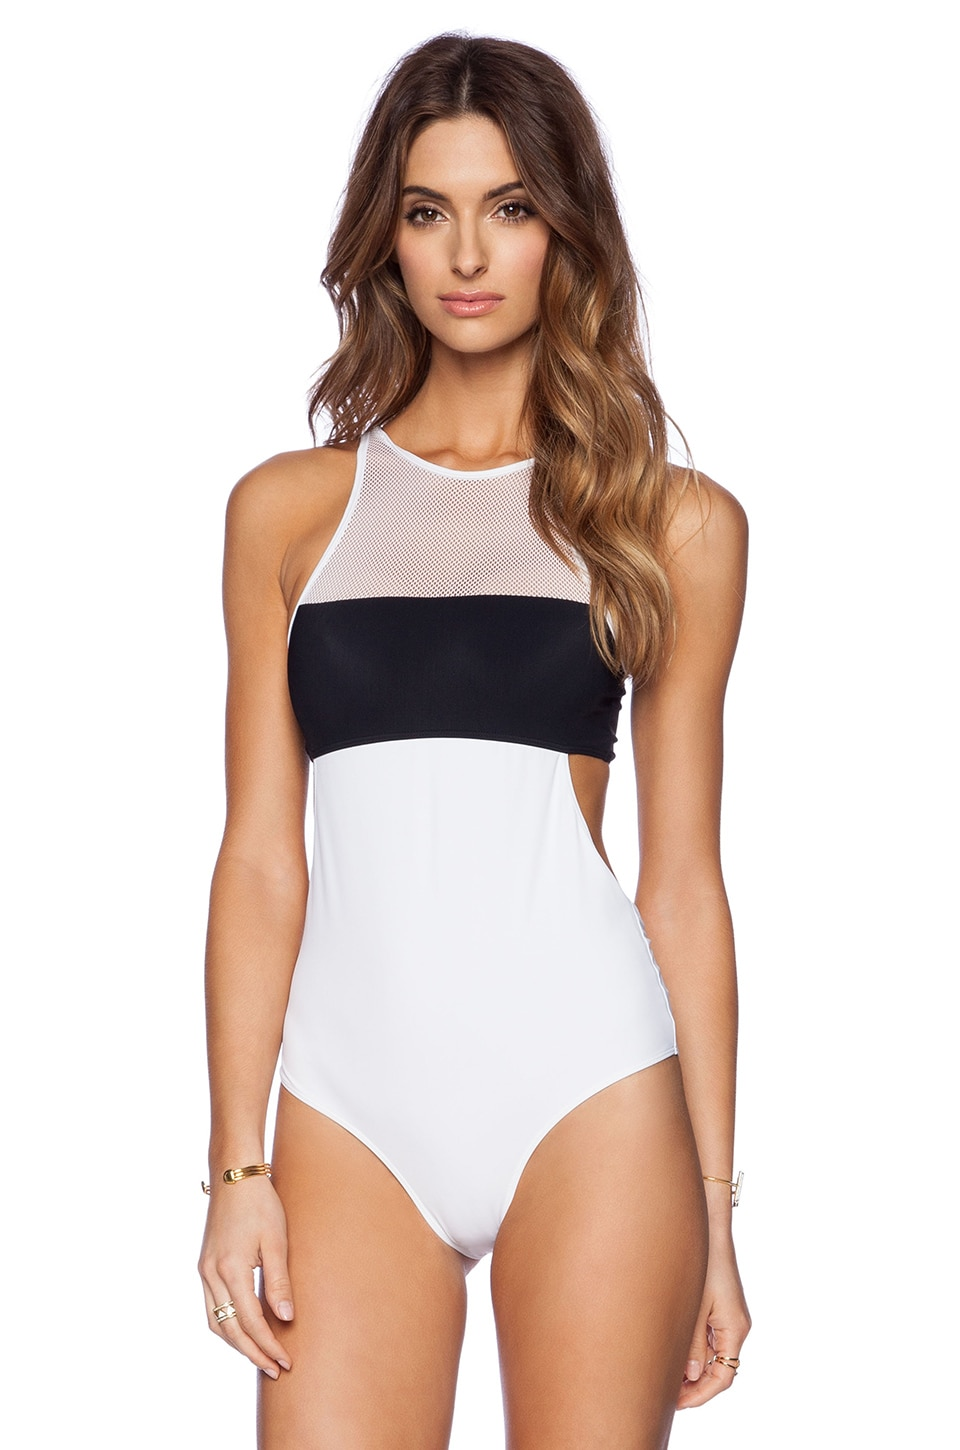 T by Alexander Wang Mesh & Matte Tricot One Piece Swimsuit in Black & White